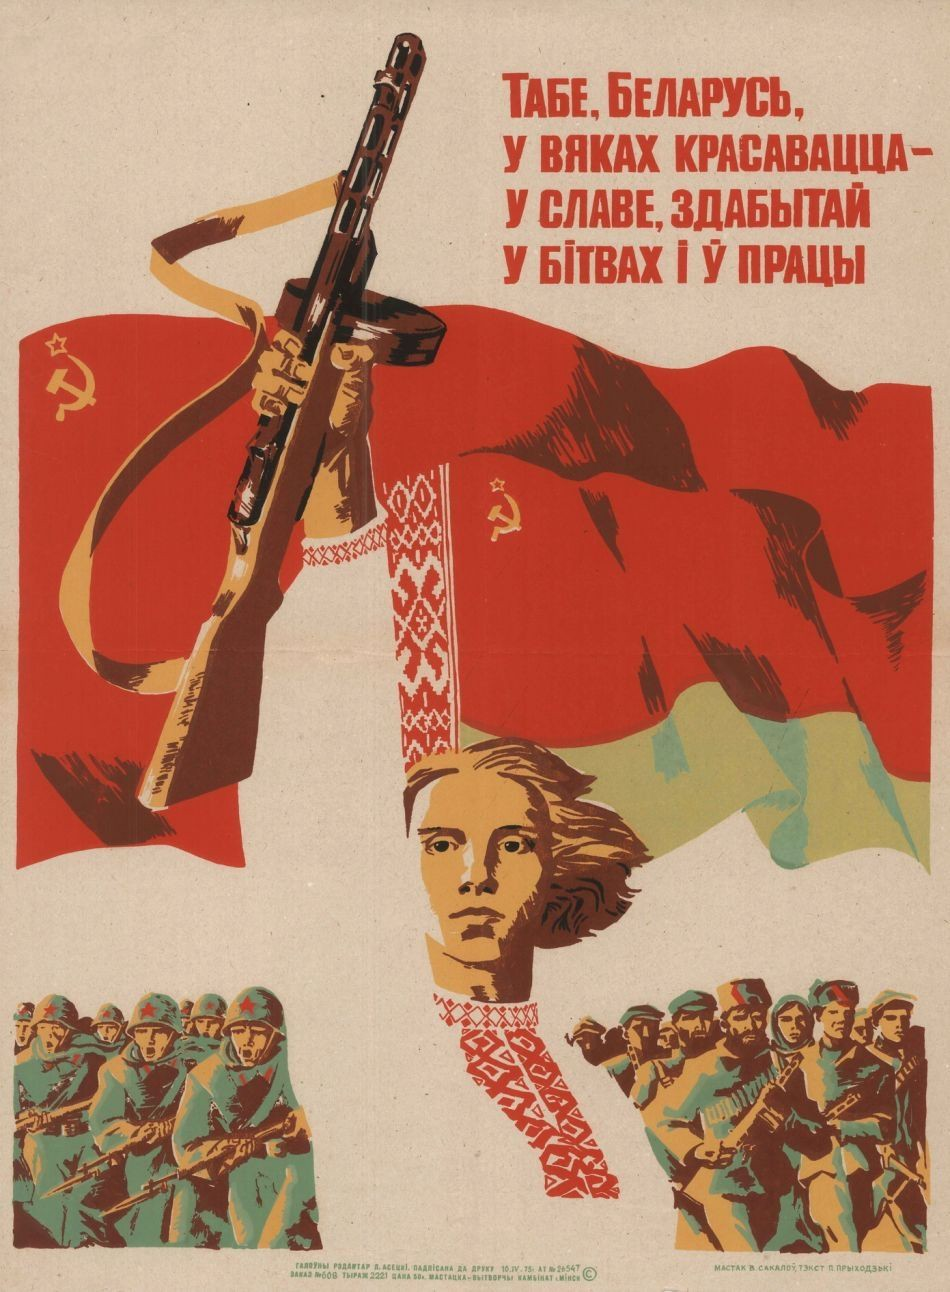 Depicted: Soviet poster of a woman holding a PPSH up to the sky, with an intense and commanding stare. Above her flutters the red banners of the Soviet Union, and behind her soldiers are marching to war.